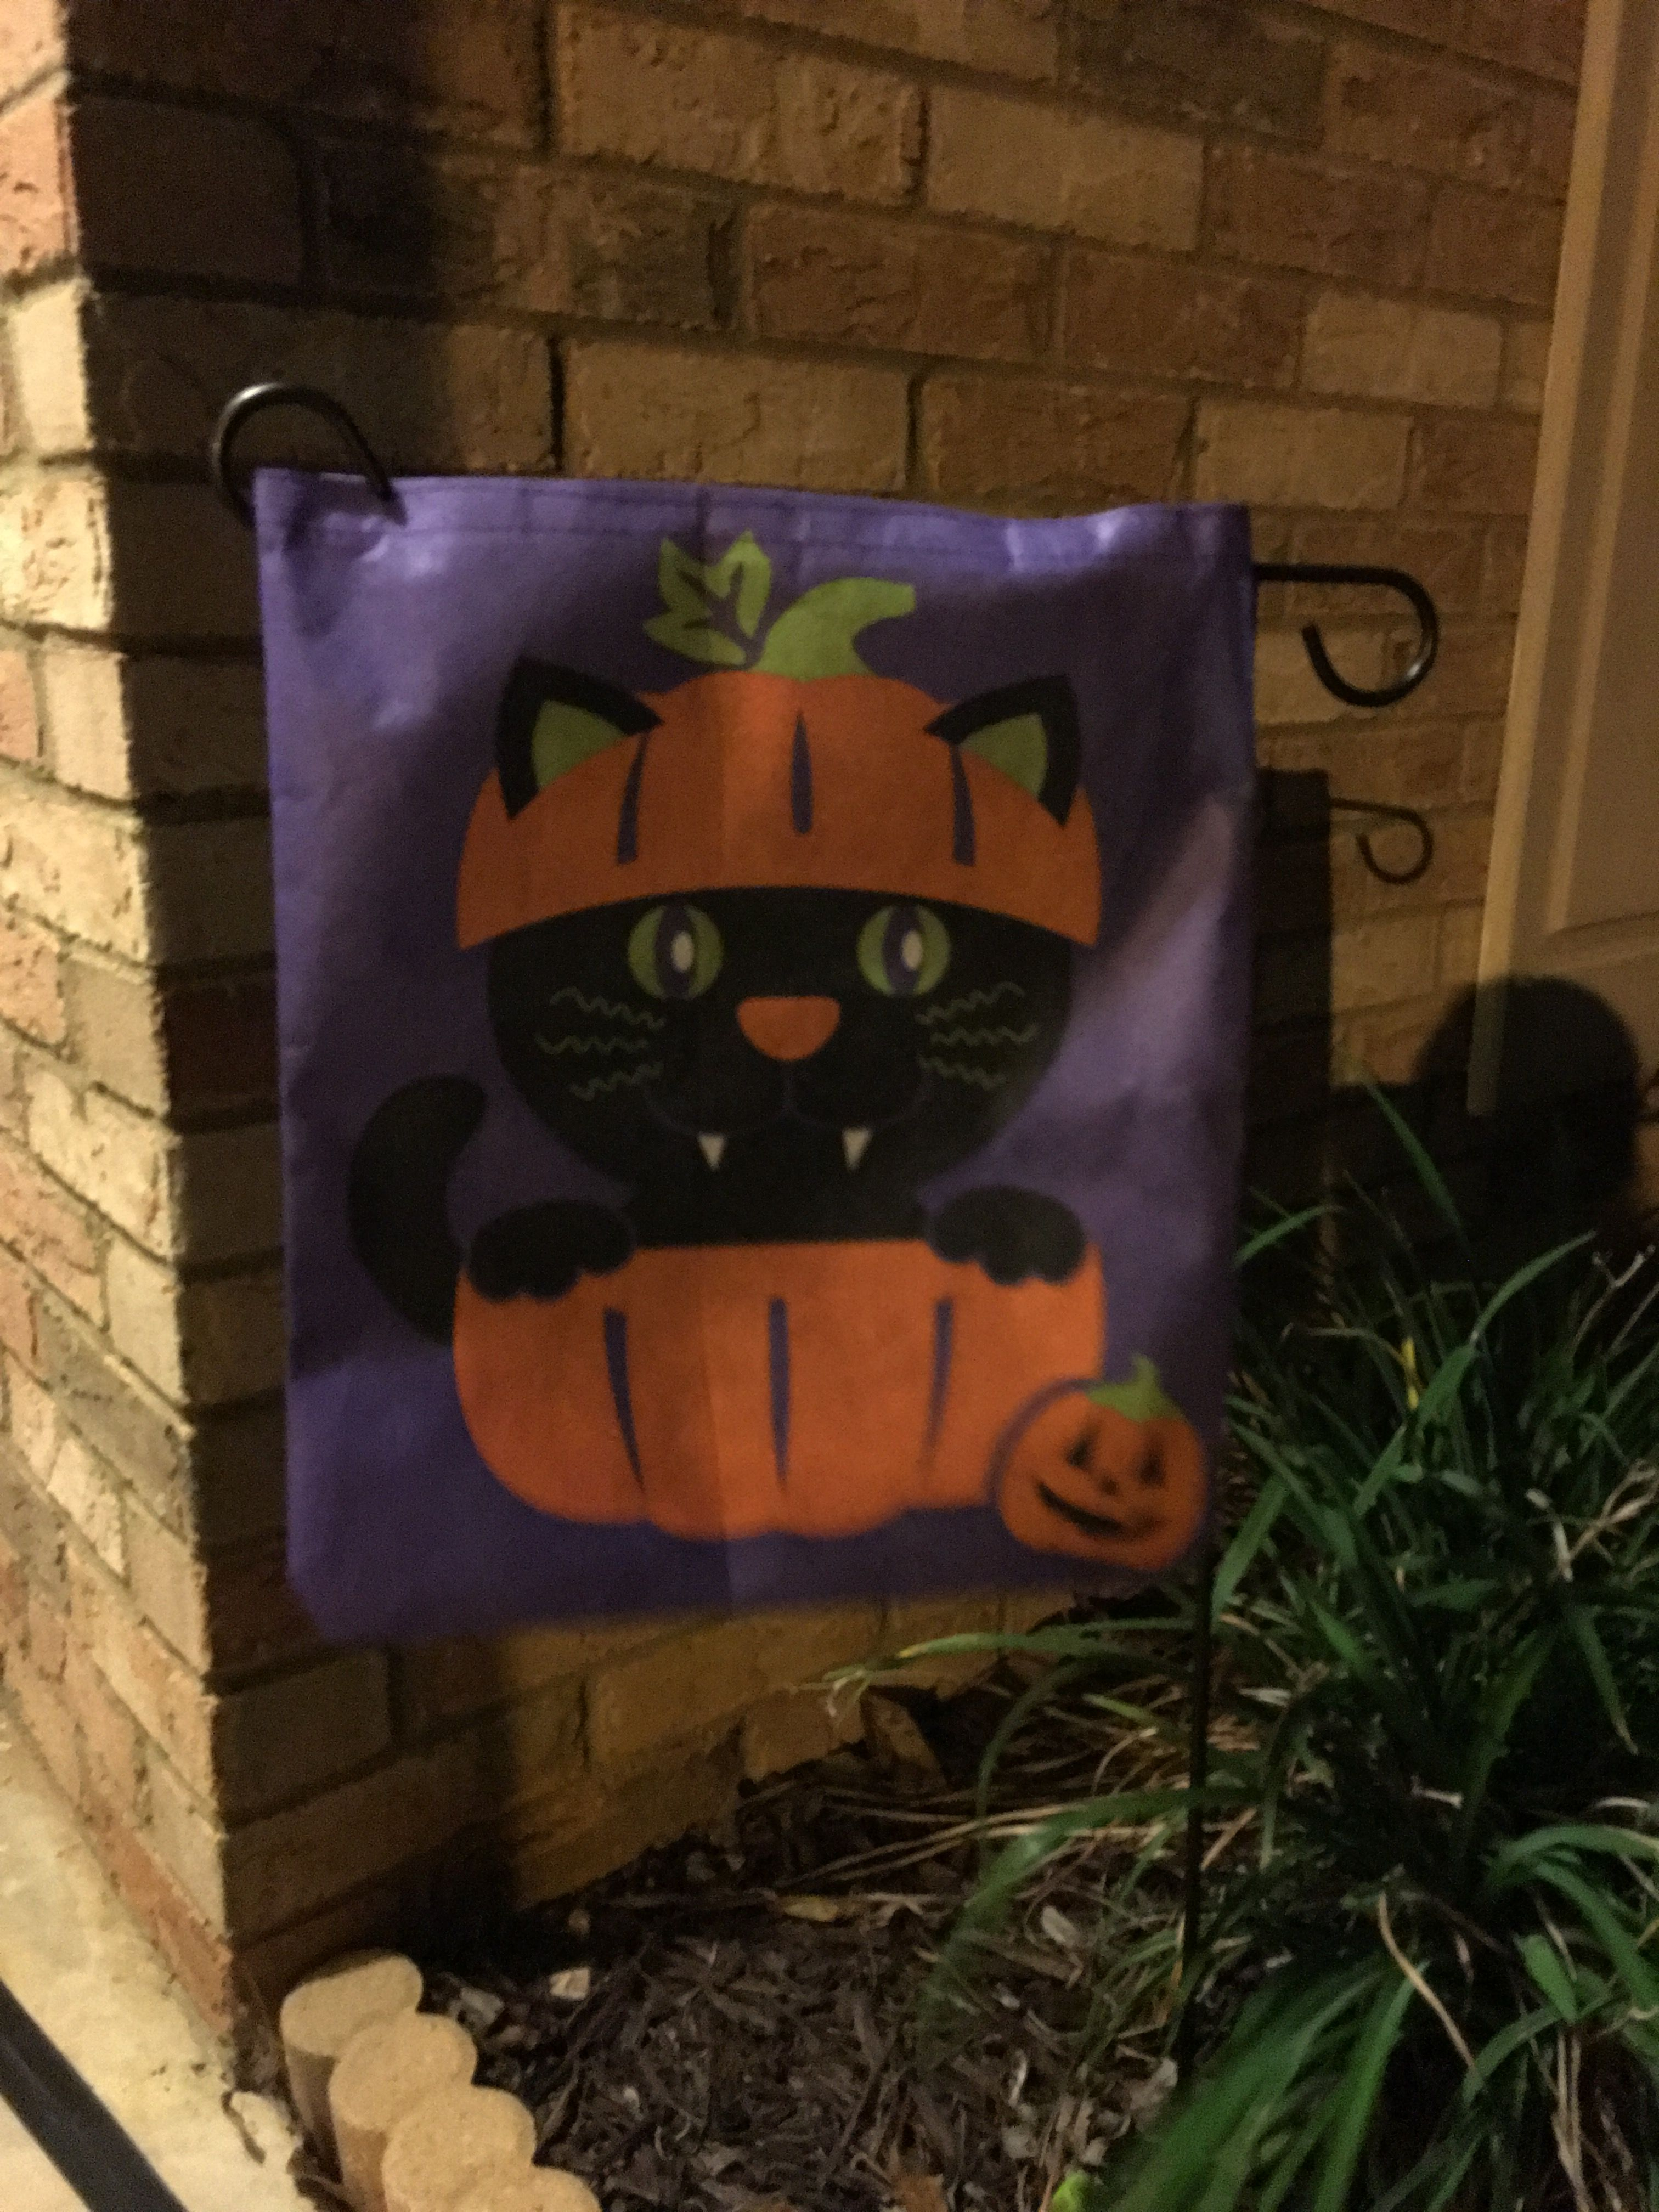 1 Trick Or Treat Bag From Dollar General Turned Into Garden Flag